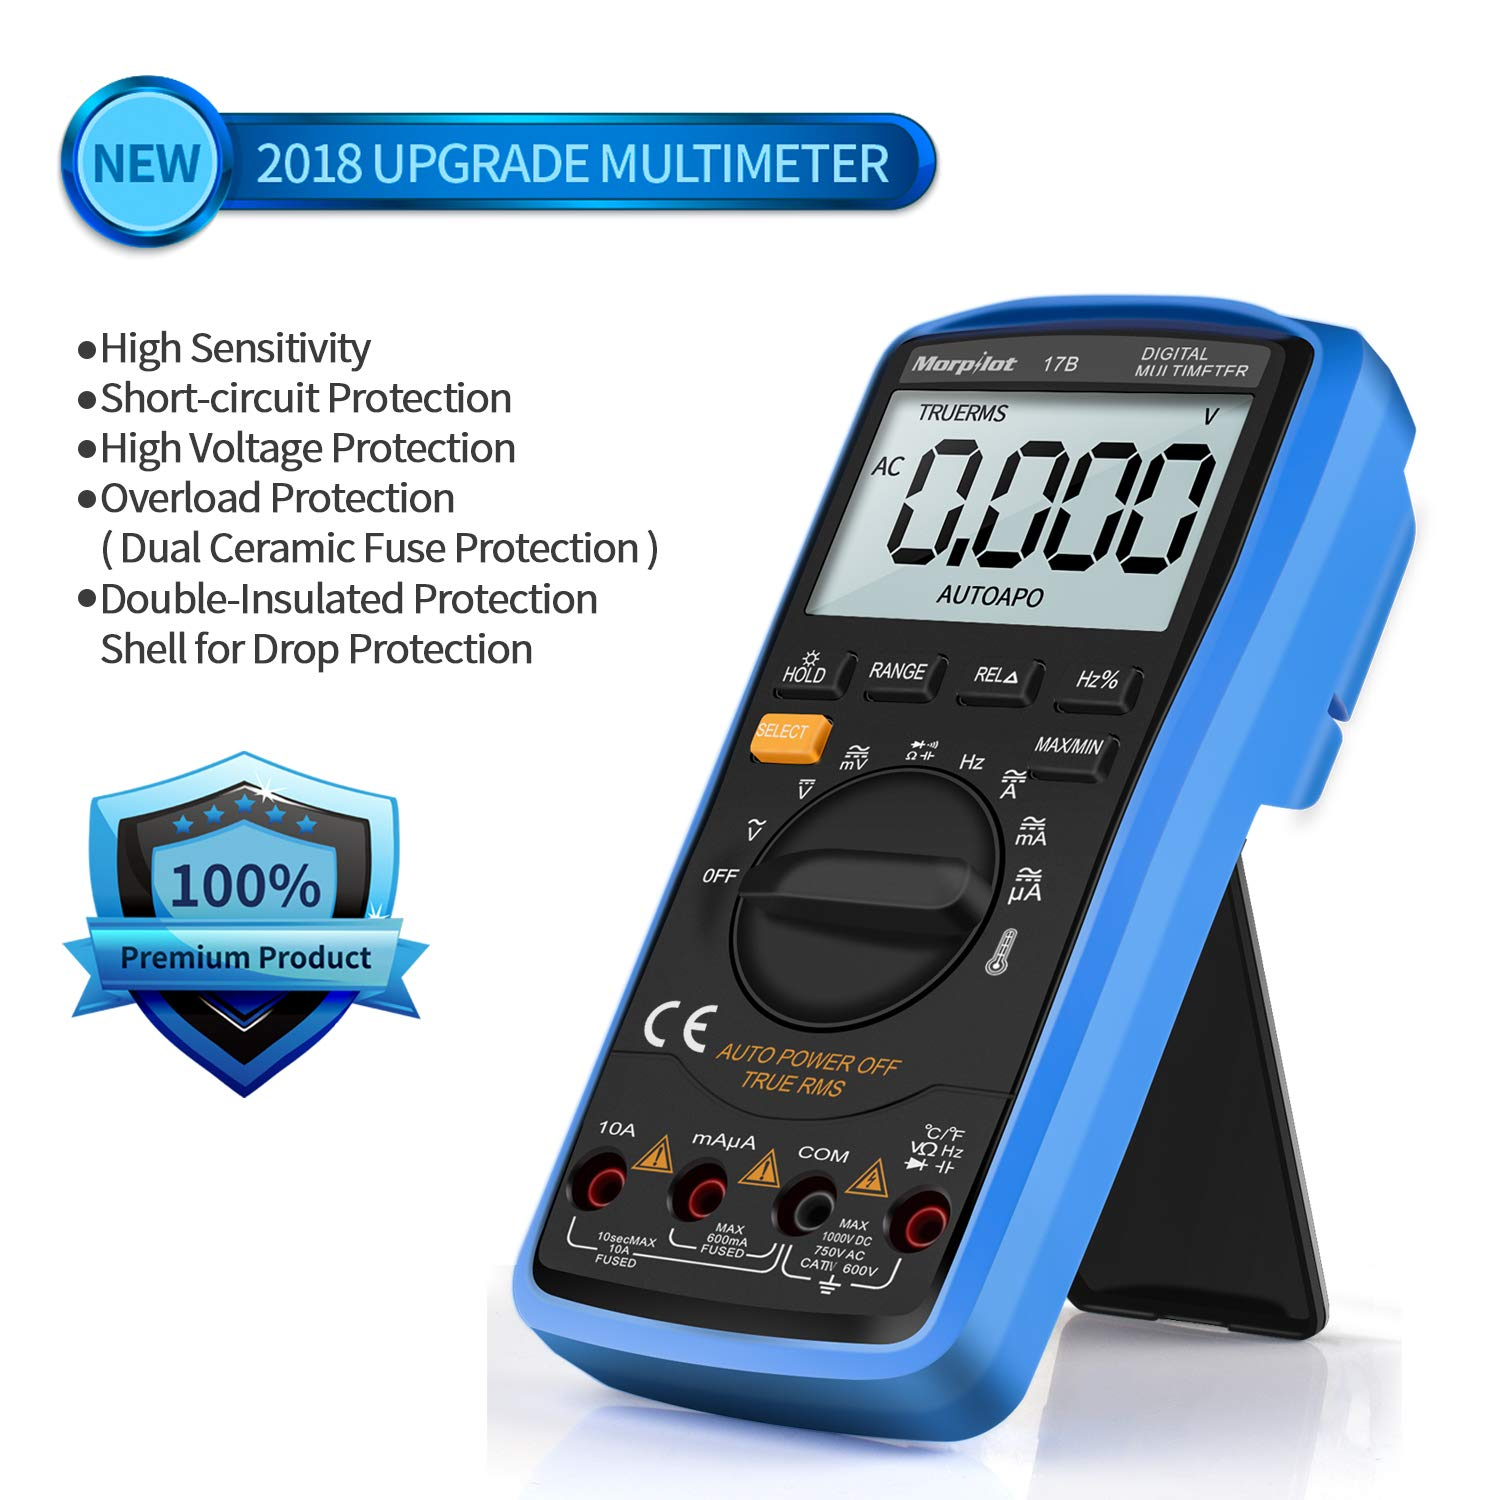 Multimeter Morpilot Trms 6000counts Digital Ohmmeters Manual And Frequency To Voltage Converter Change Your Voltmeter Auto Ranging Measures Current Resistance Continuity Capacitance